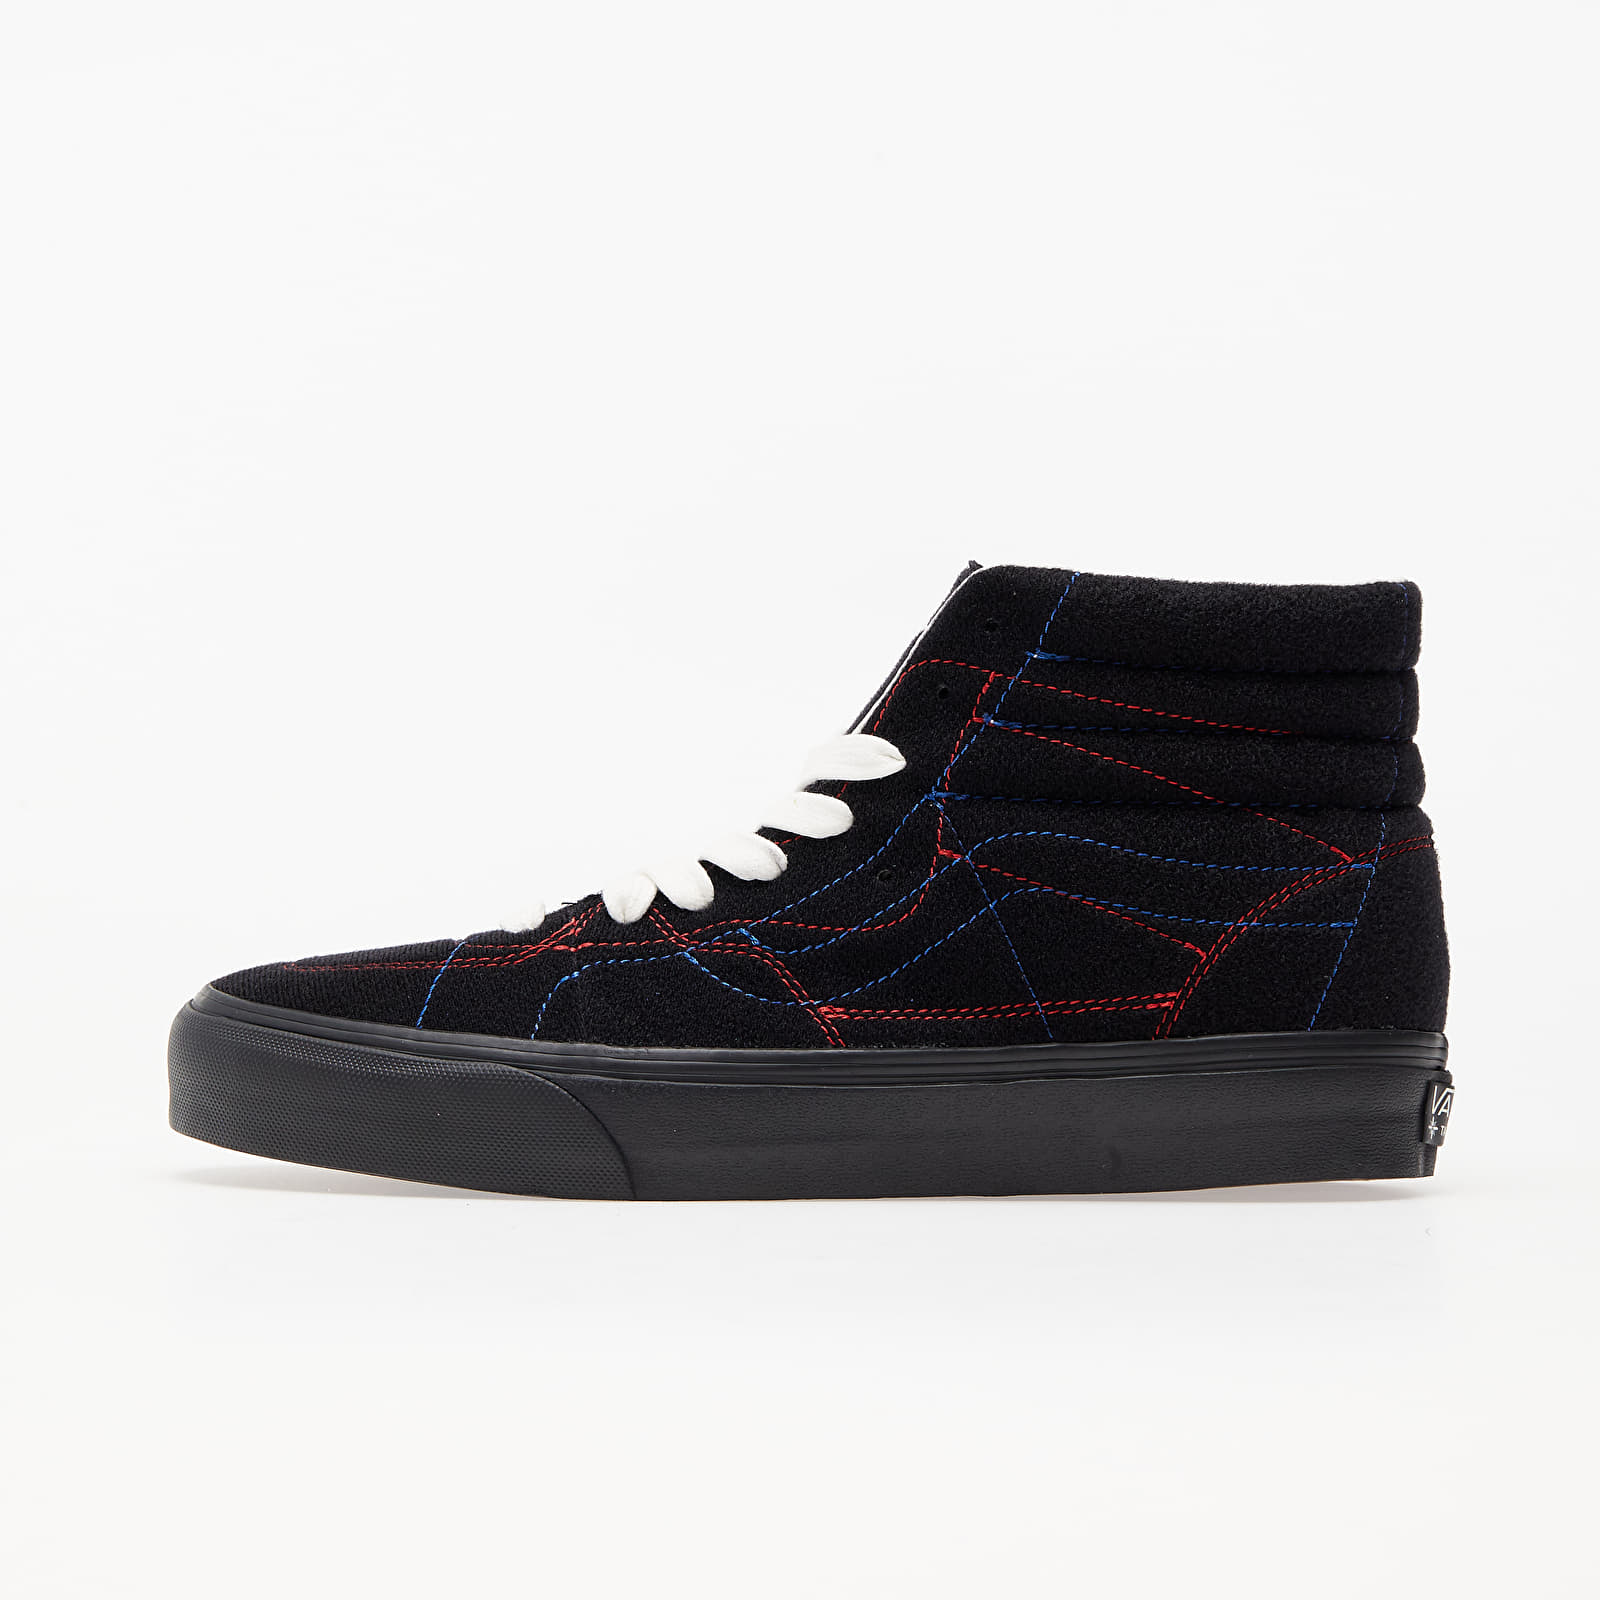 Men's shoes Vans x Taka Hayashi Diy Hi VLT LX (H&L) Black/ Mul